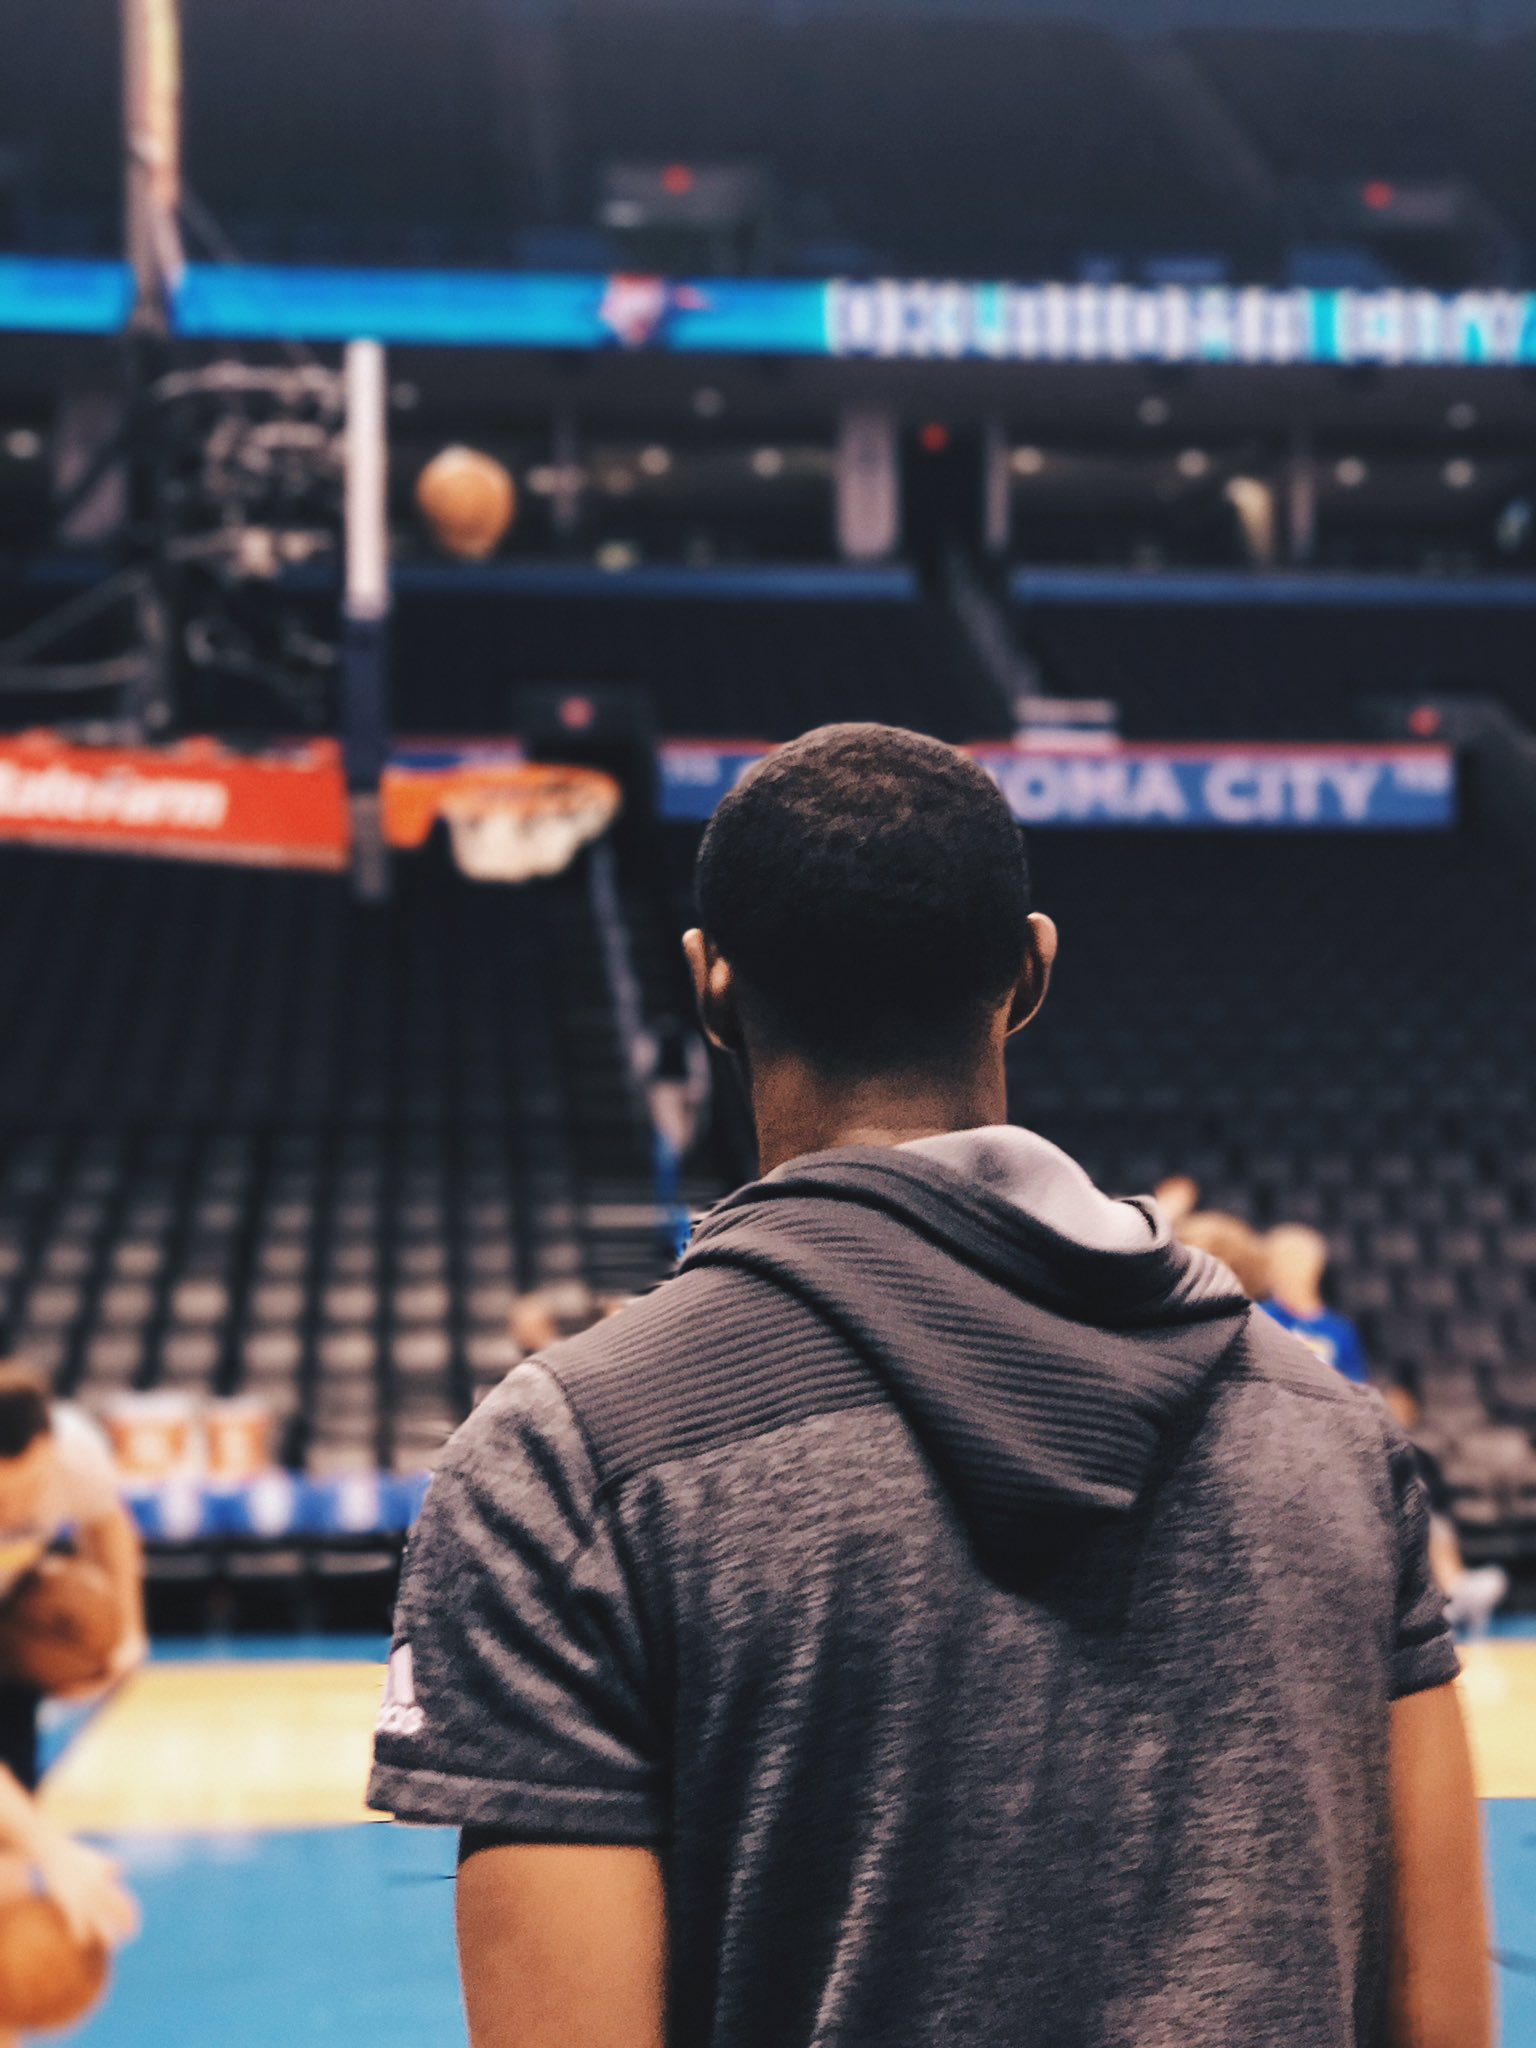 75 minutes. #DubNation https://t.co/4uS4cGhIya